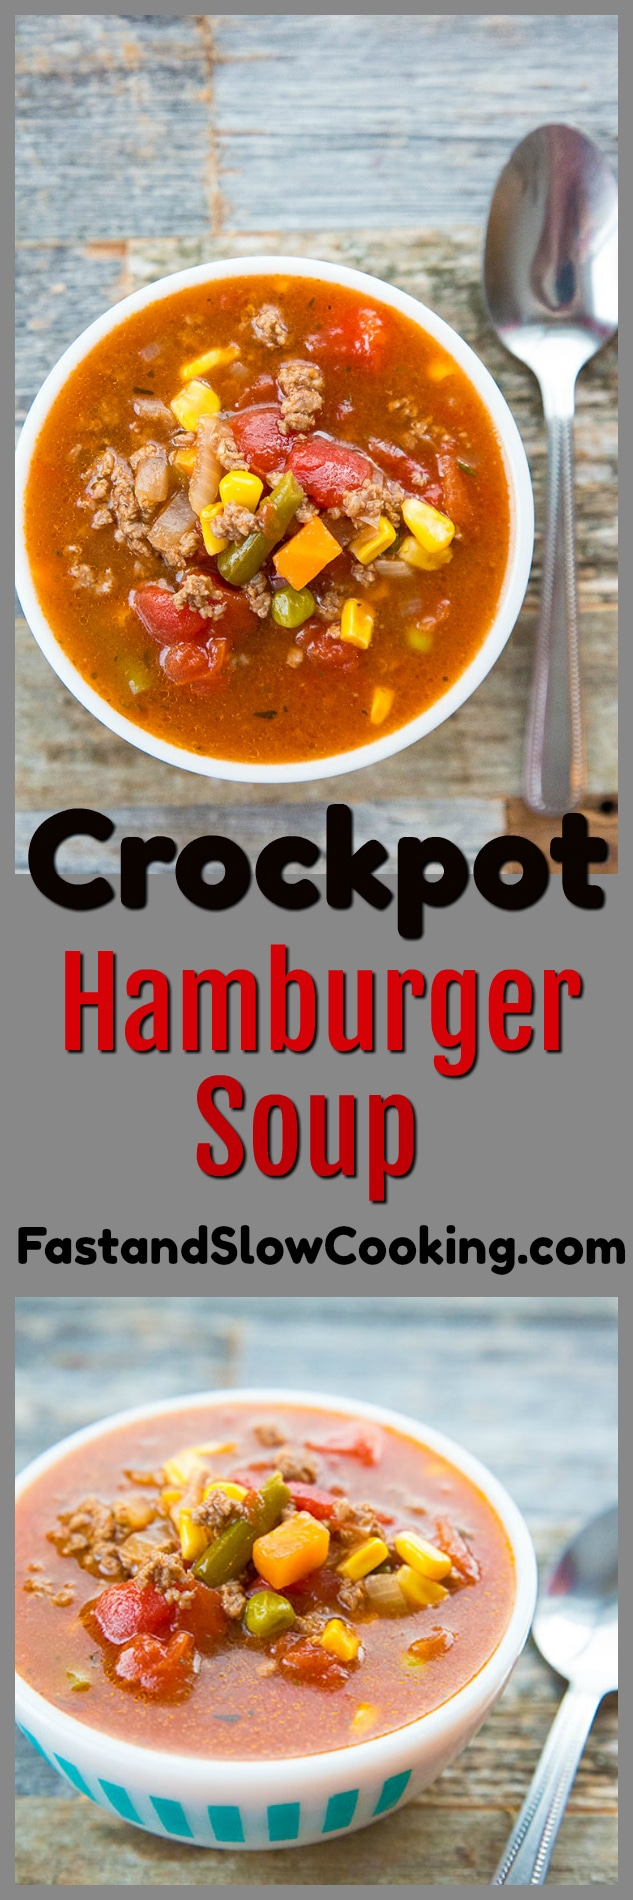 Crockpot hamburger soup. This soup is made at least once a week in our house, it's easy and so delicious! #crockpot #slowcooker #hamburger #soup #recipe #dinner #supper